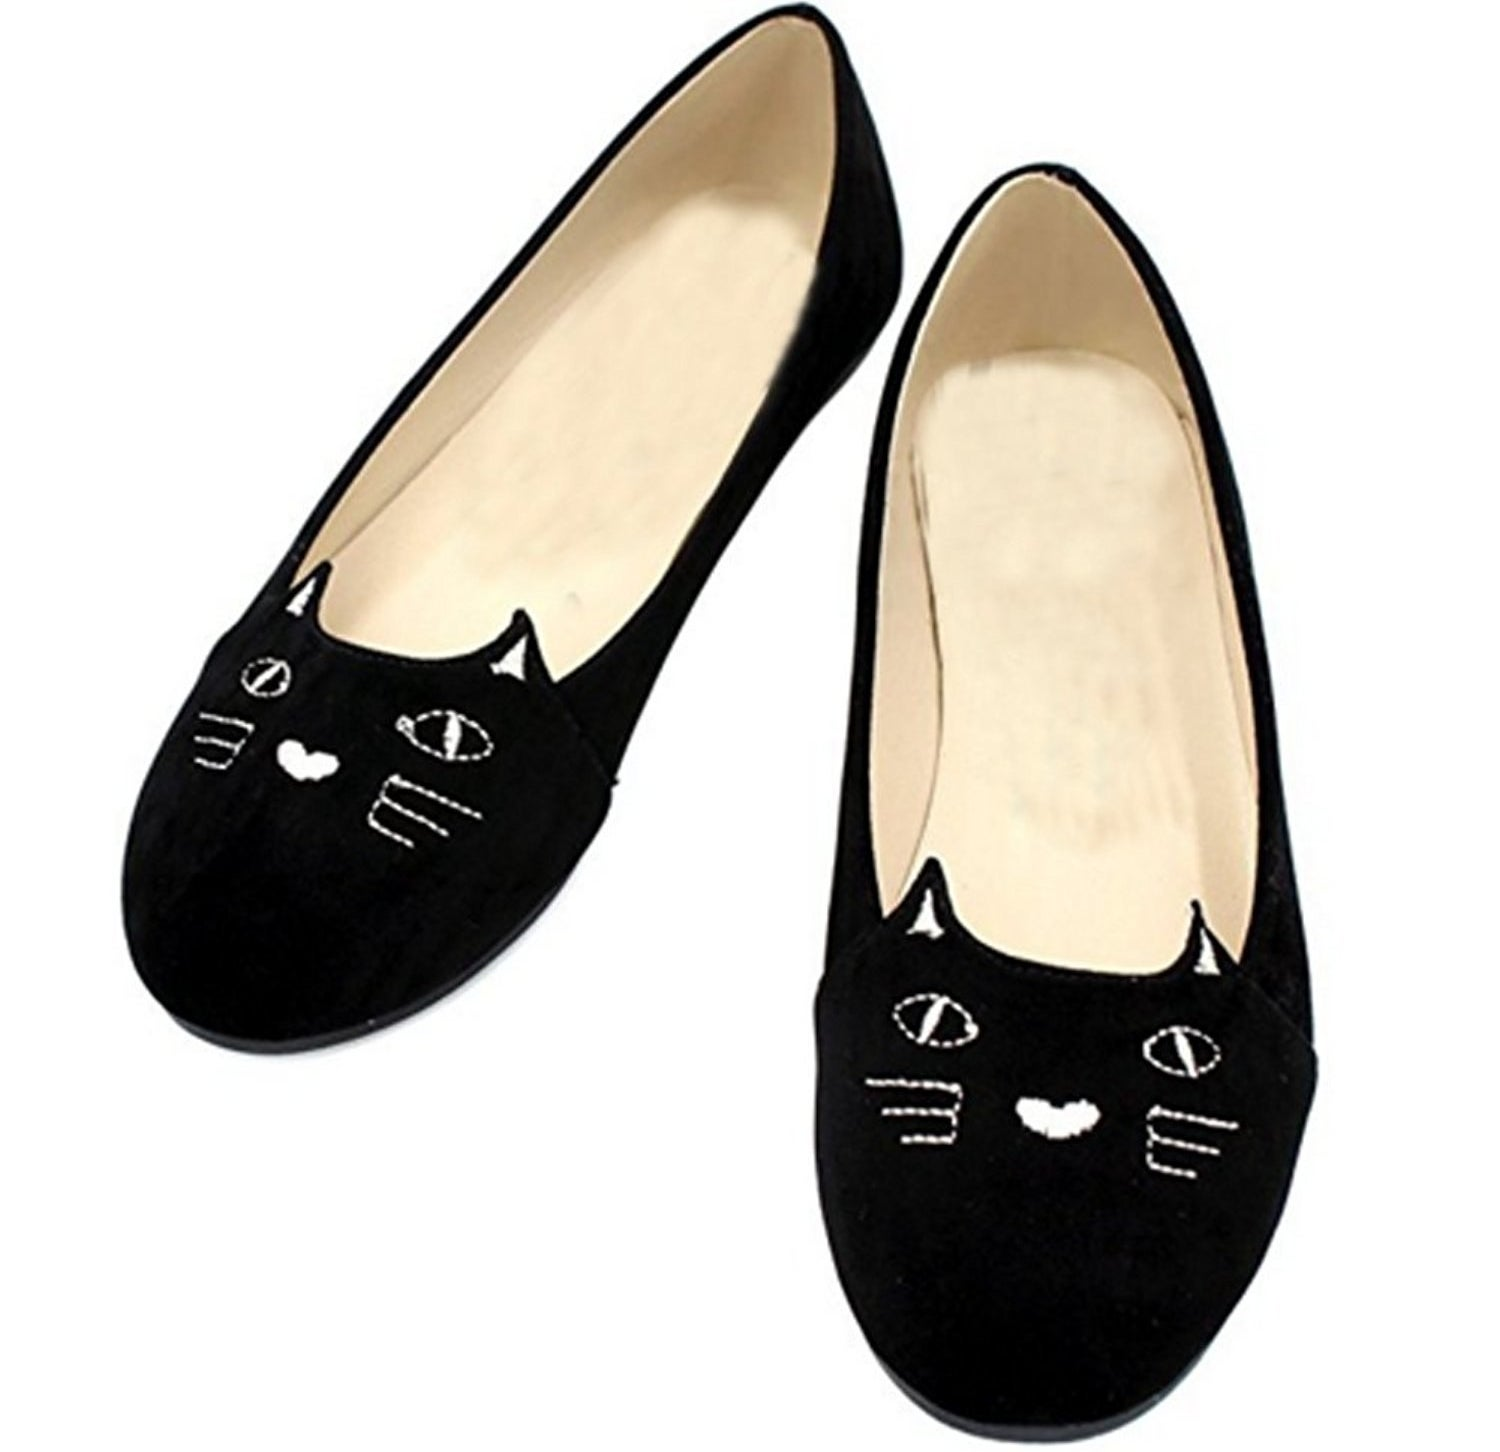 Get them from Amazon for $19.99+ (available in sizes 5–10).